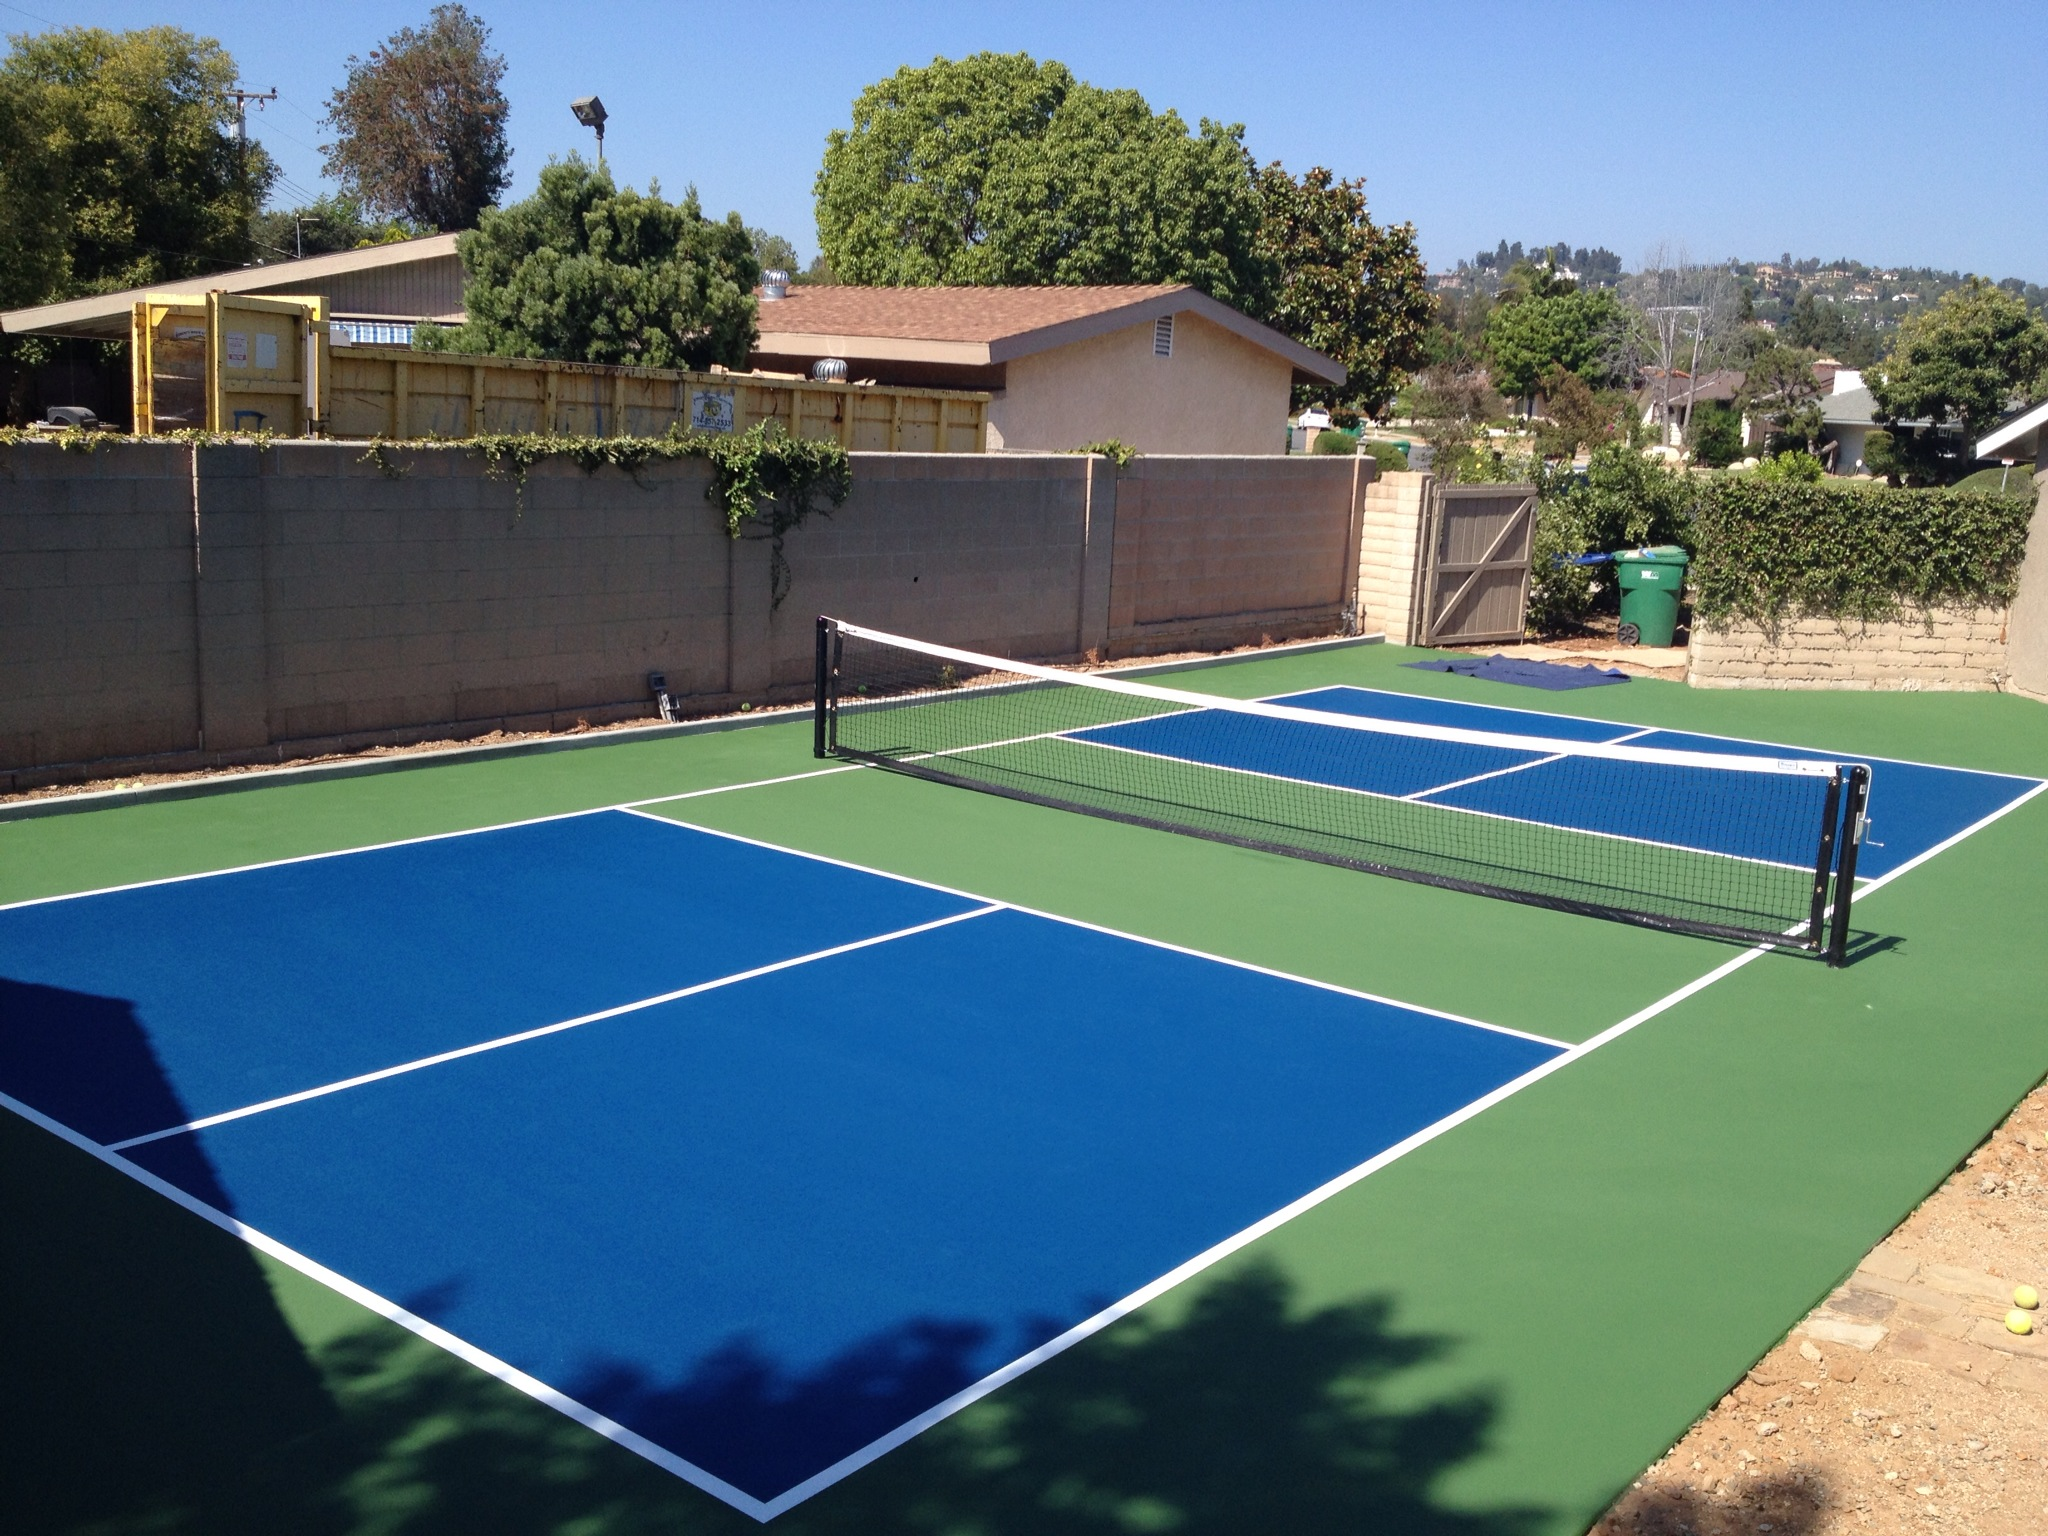 multiple basketball court diagram wiring of three way switch can pickleball be played on a tennis